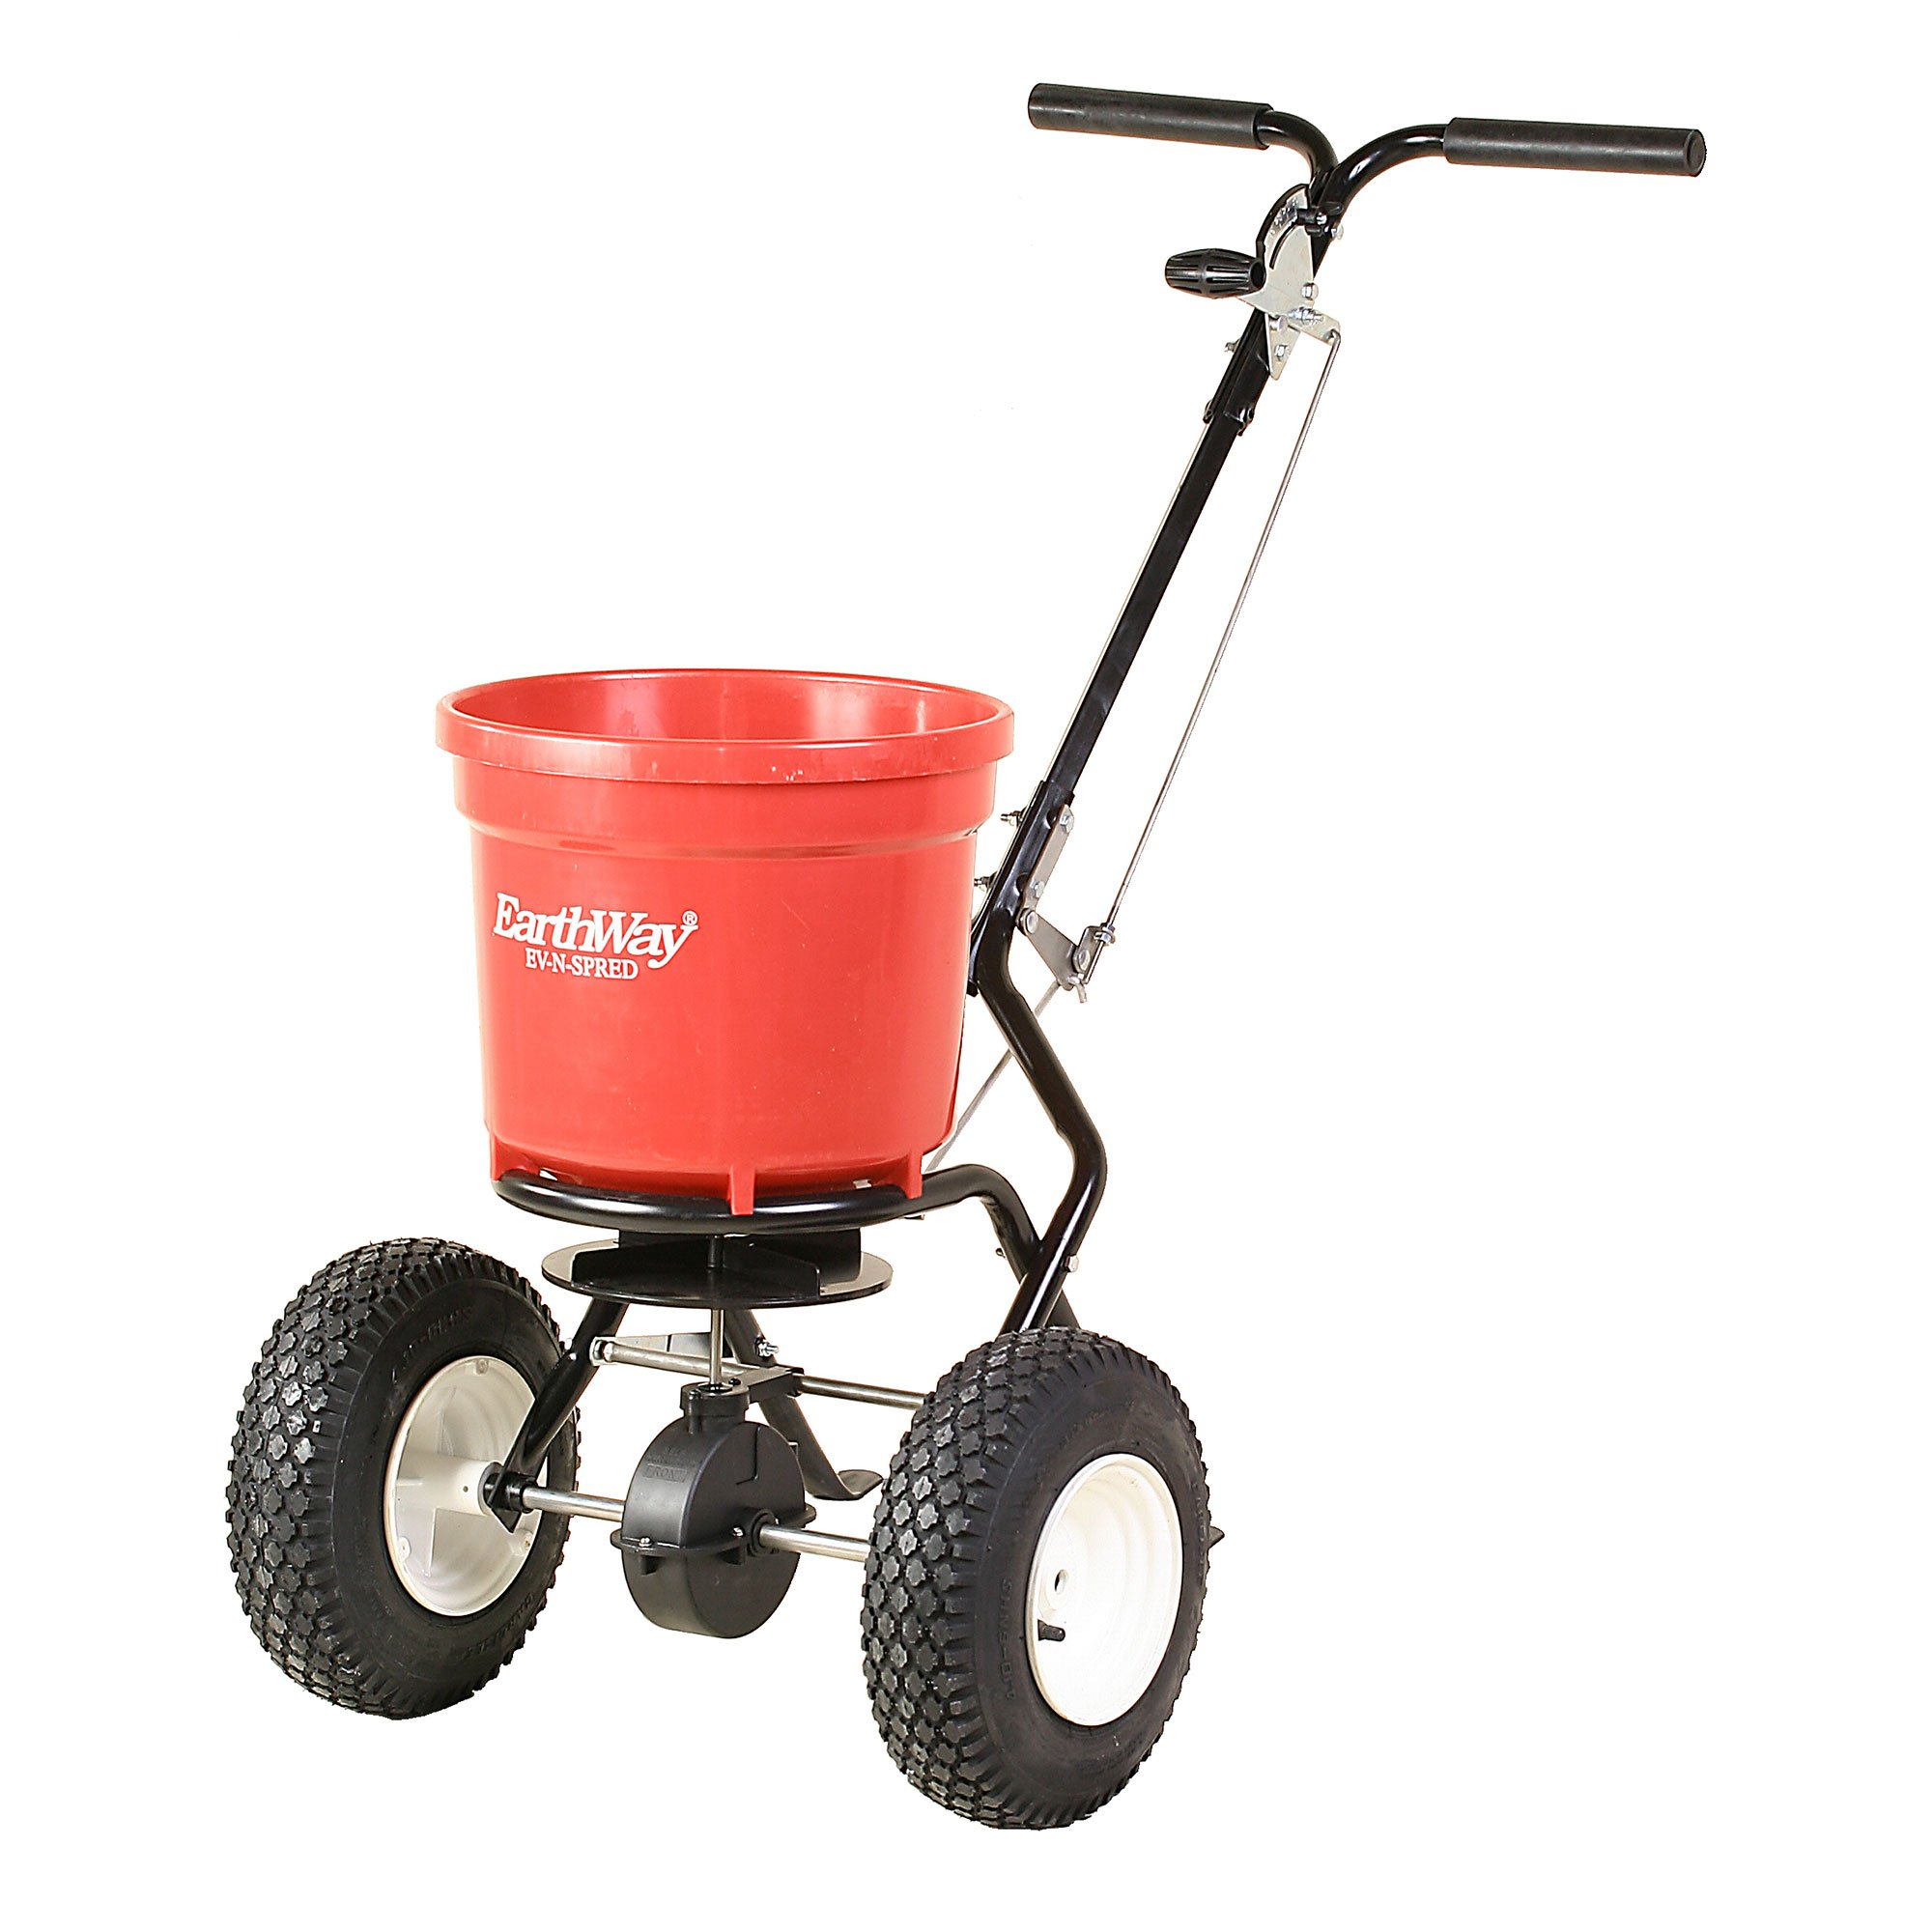 Earthway 2150 50 Lb Commercial Broadcast Walk Behind Garden Seed Salt Spreader by Earthway Products, Inc